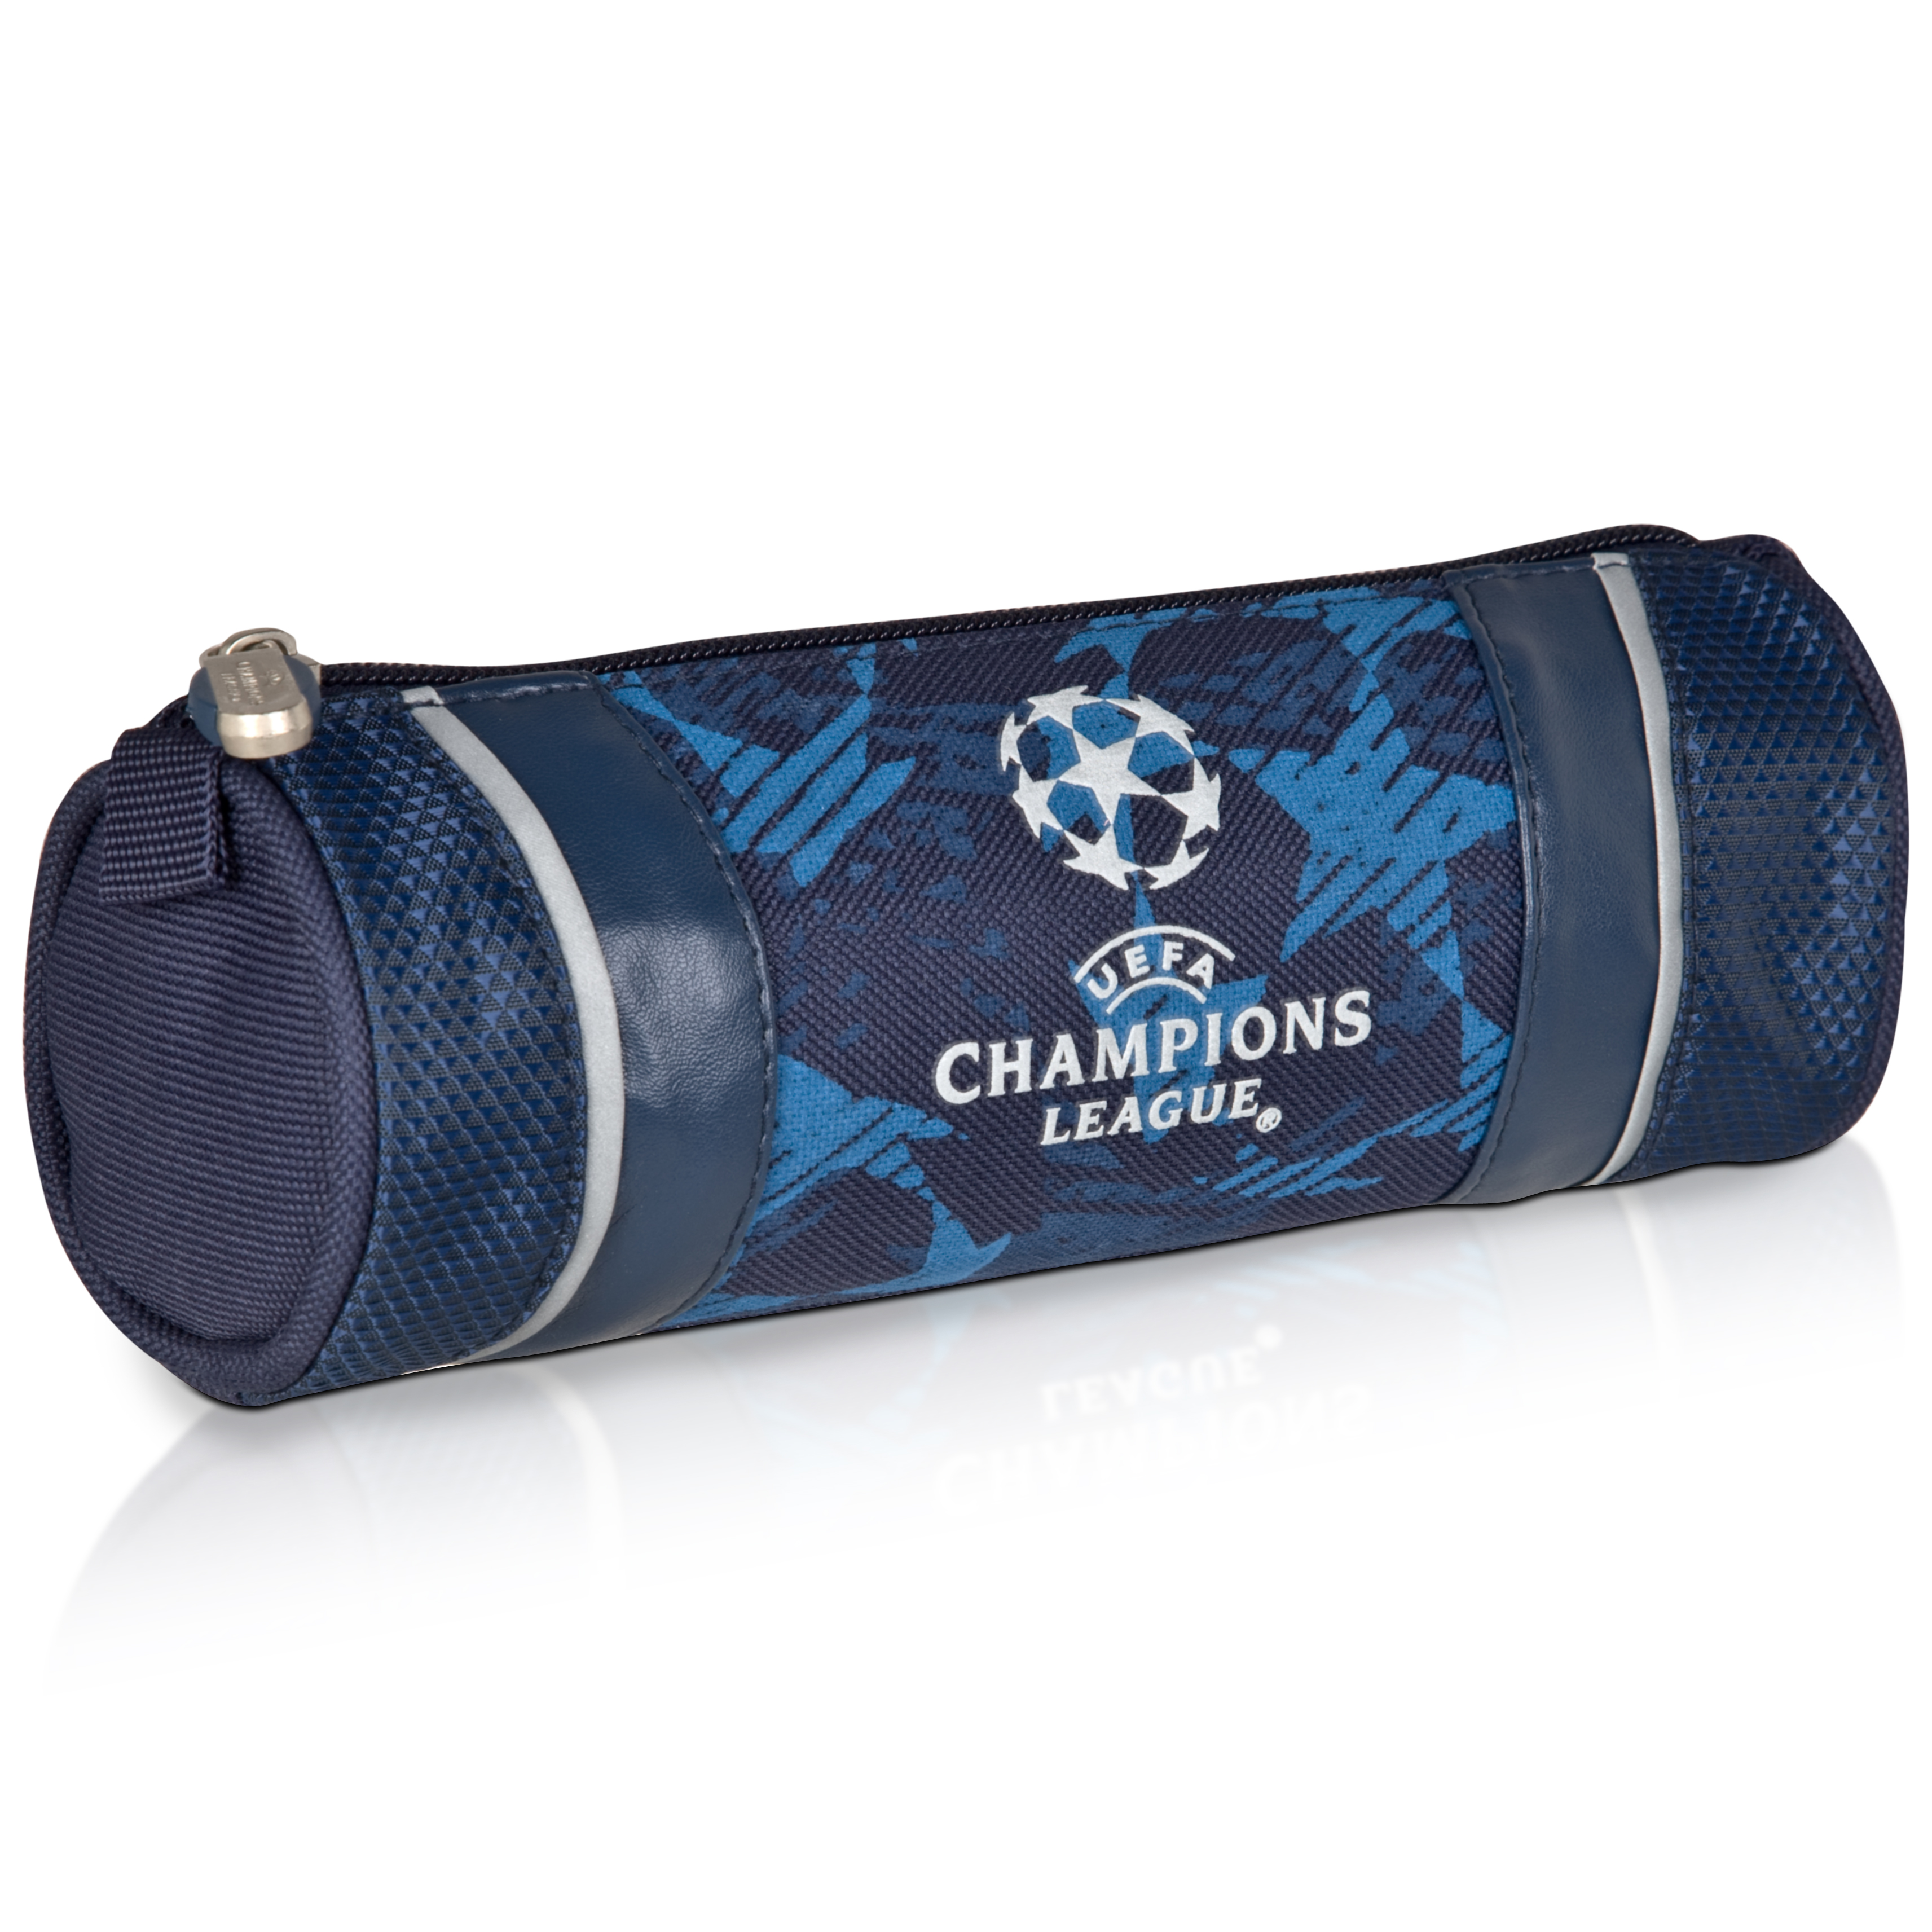 UEFA Champions League Round Pencil Case